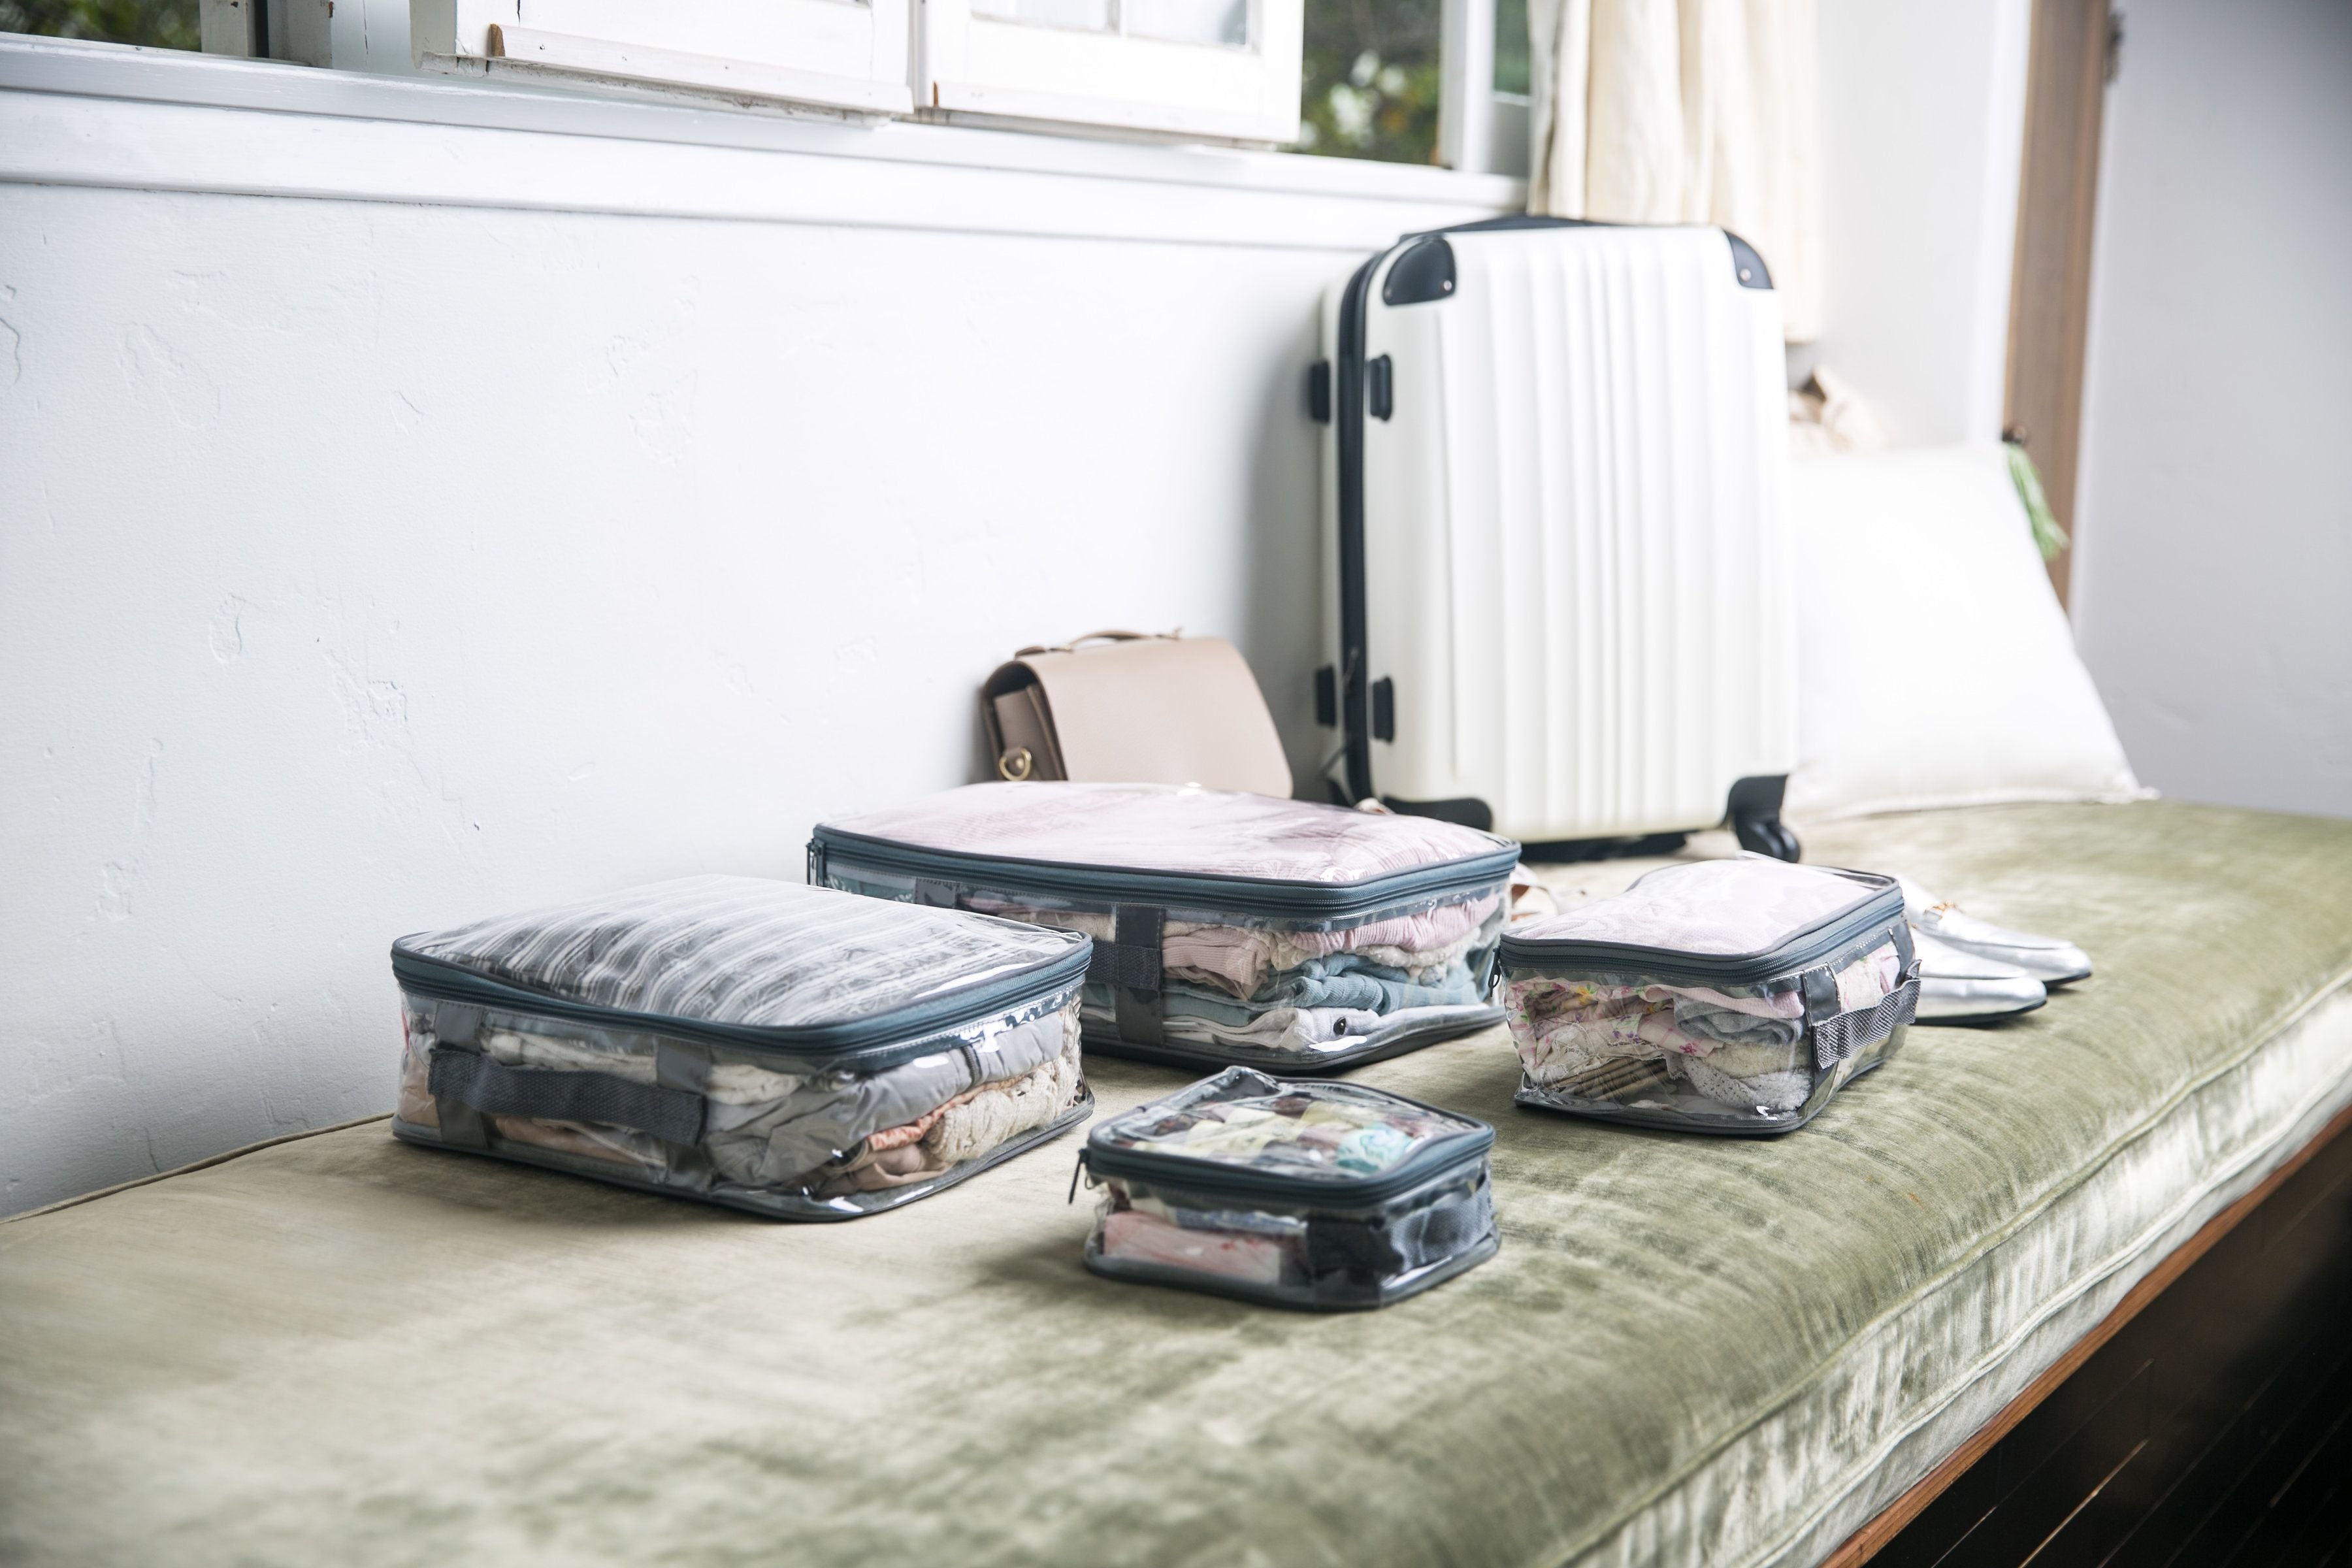 Starter set packing cubes and a white hard shell suitcase